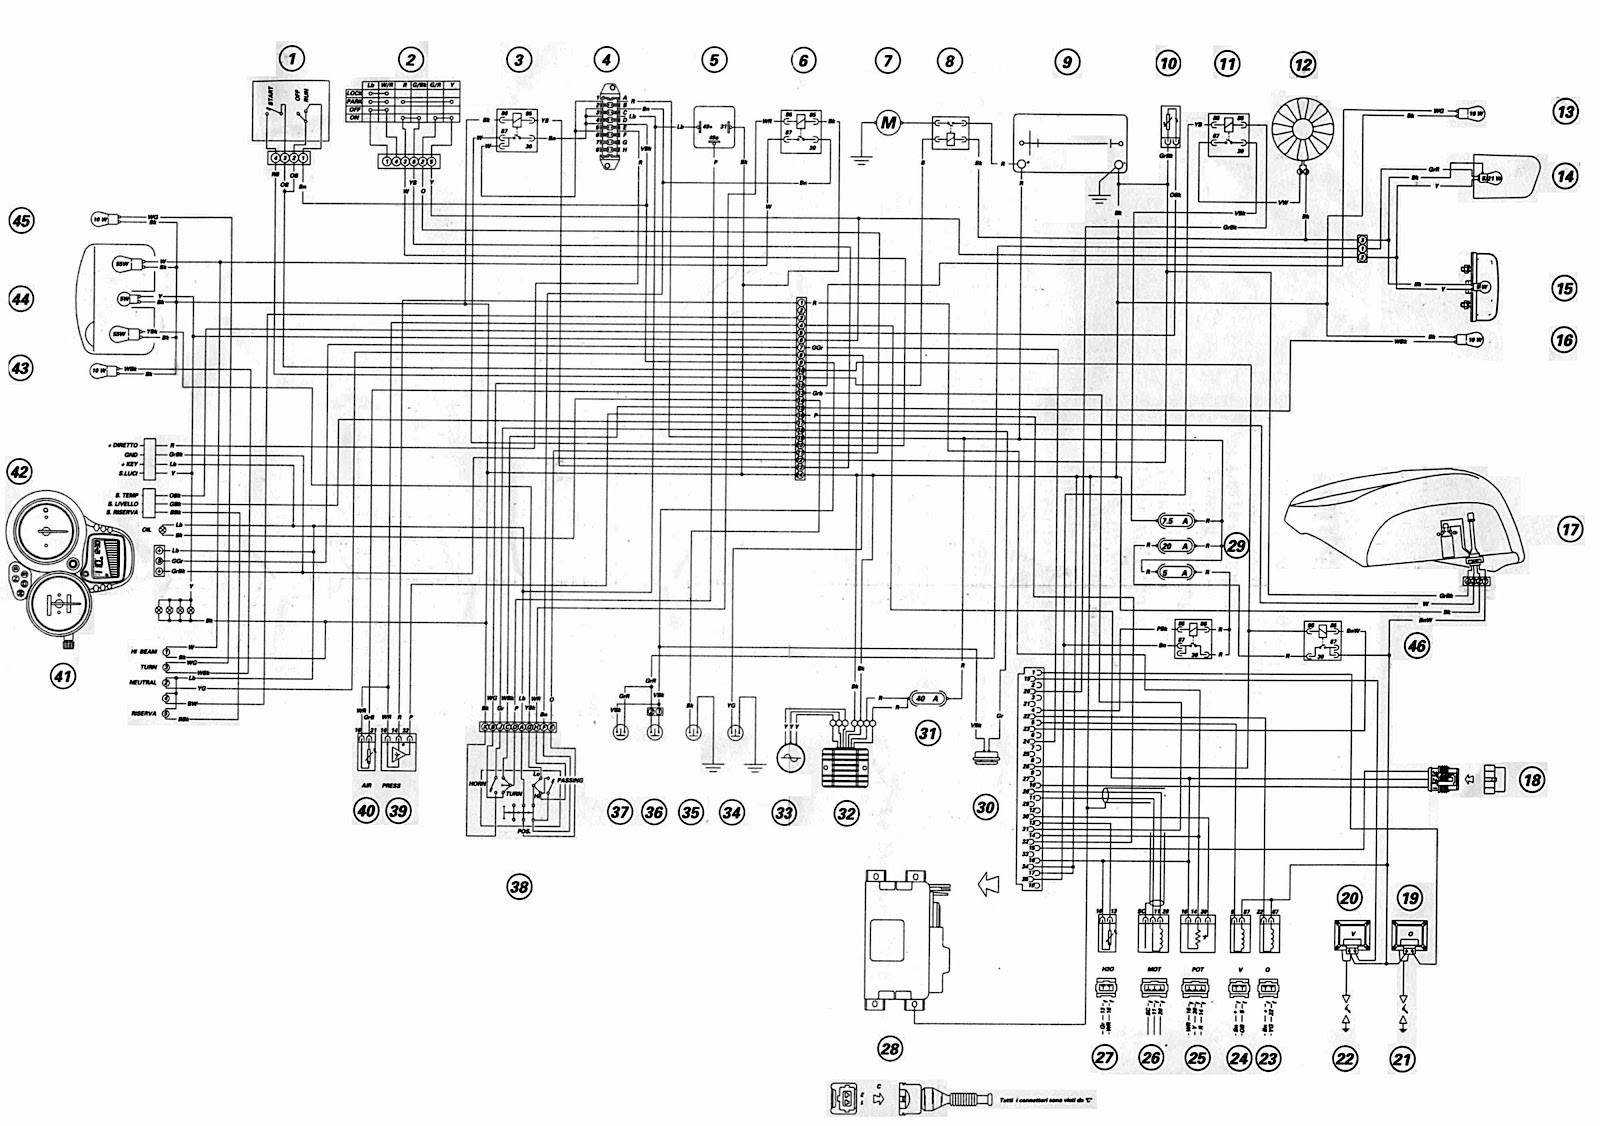 Ducati St4 Motorcycle Wiring Diagram